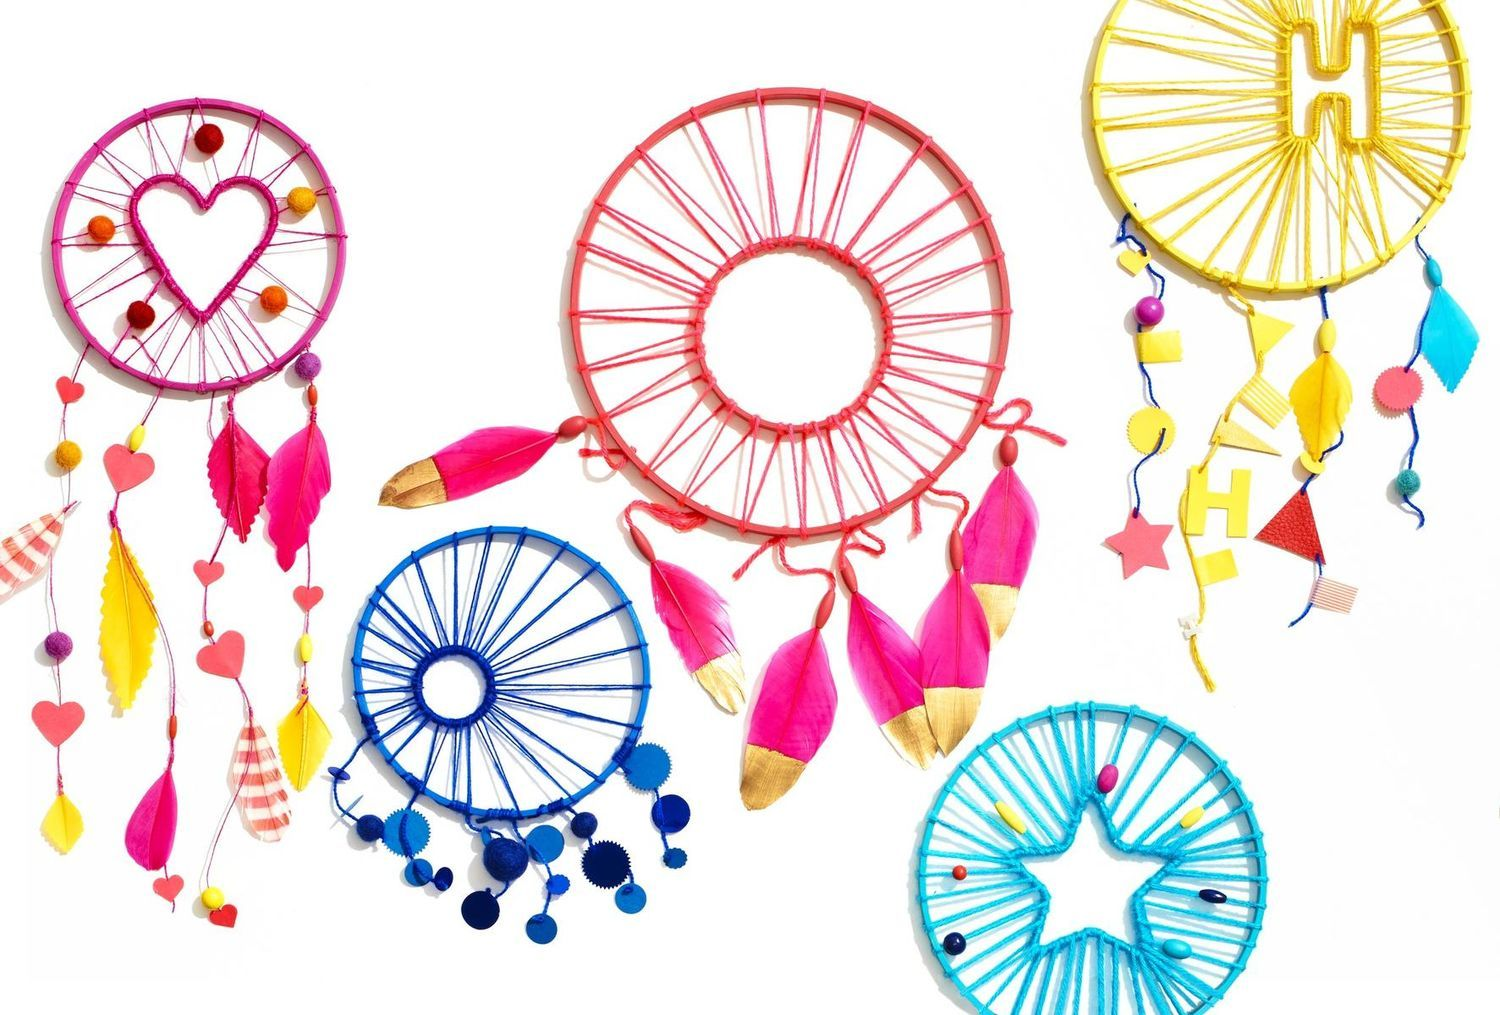 1500x1015 How To Make A Dream Catcher Bad Dreams, Dream Catchers And Catcher